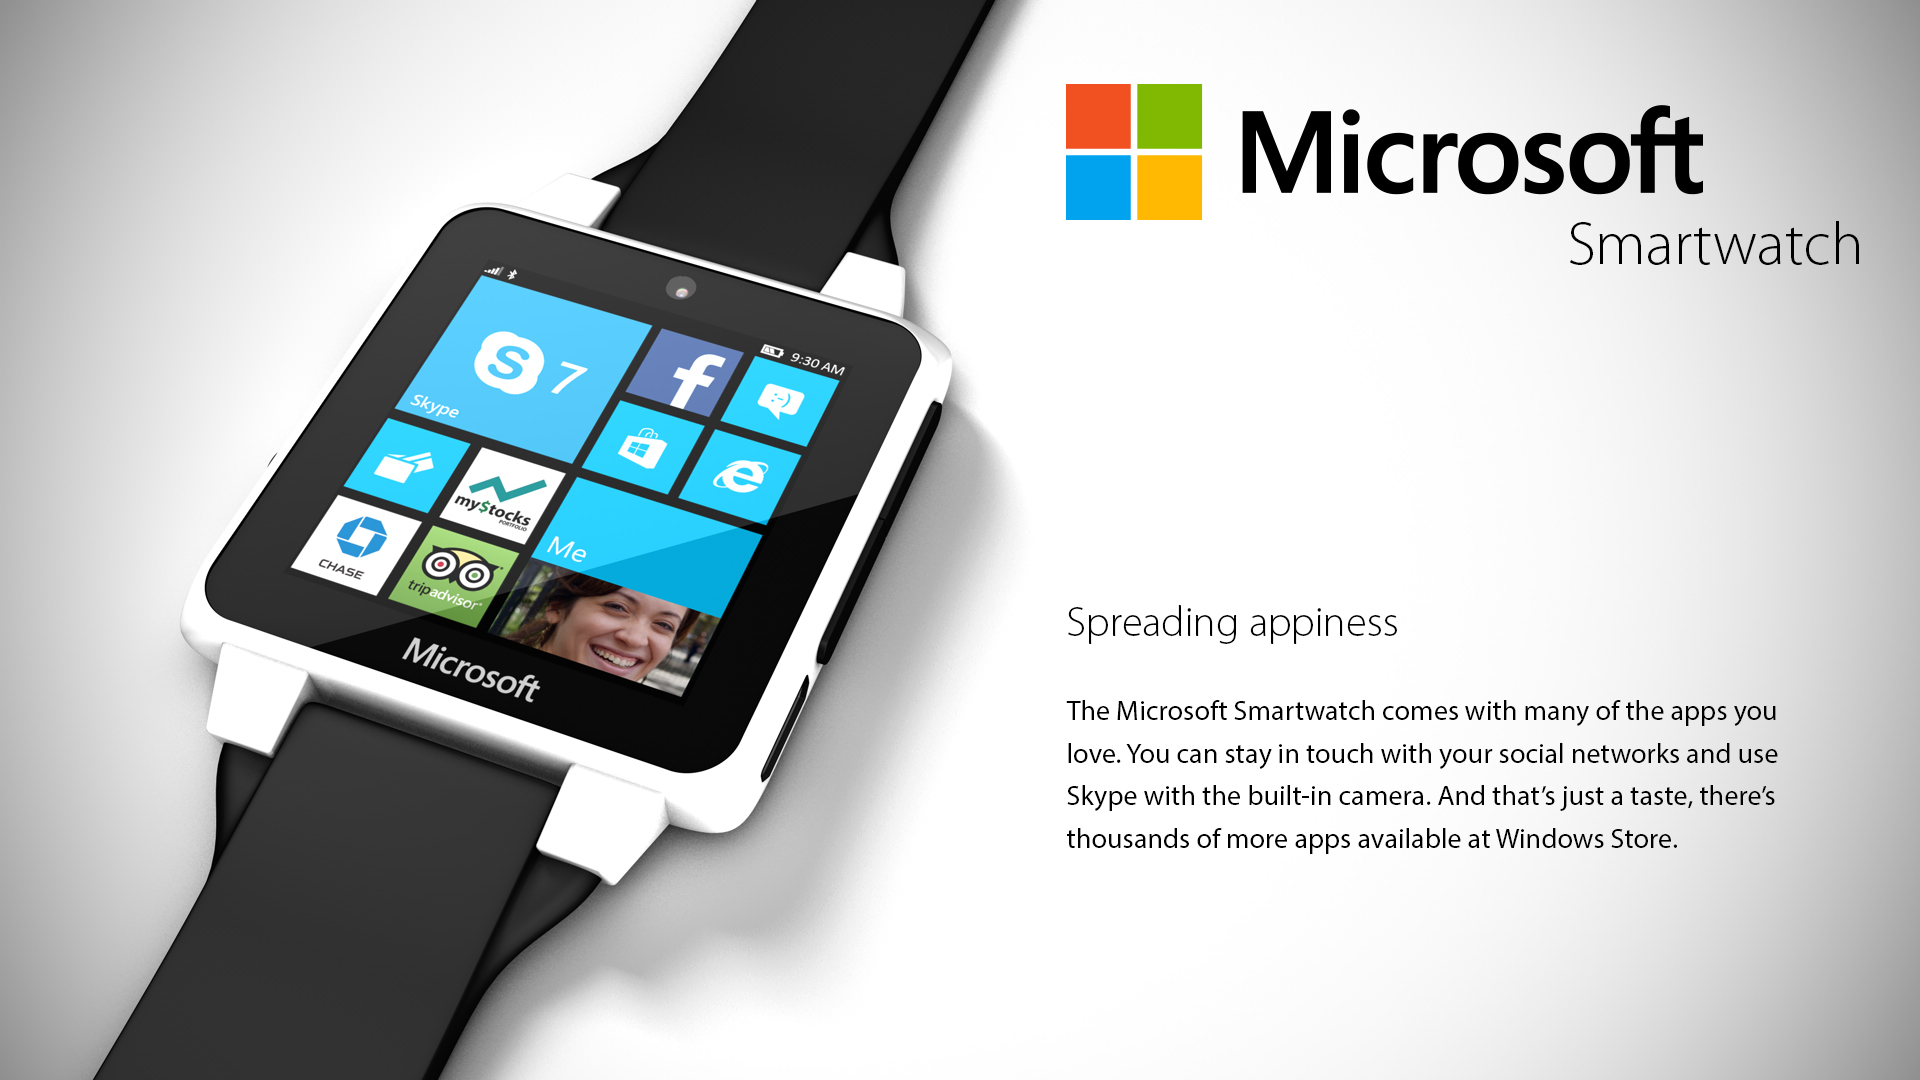 Microsoft_Smartwatch_Apps